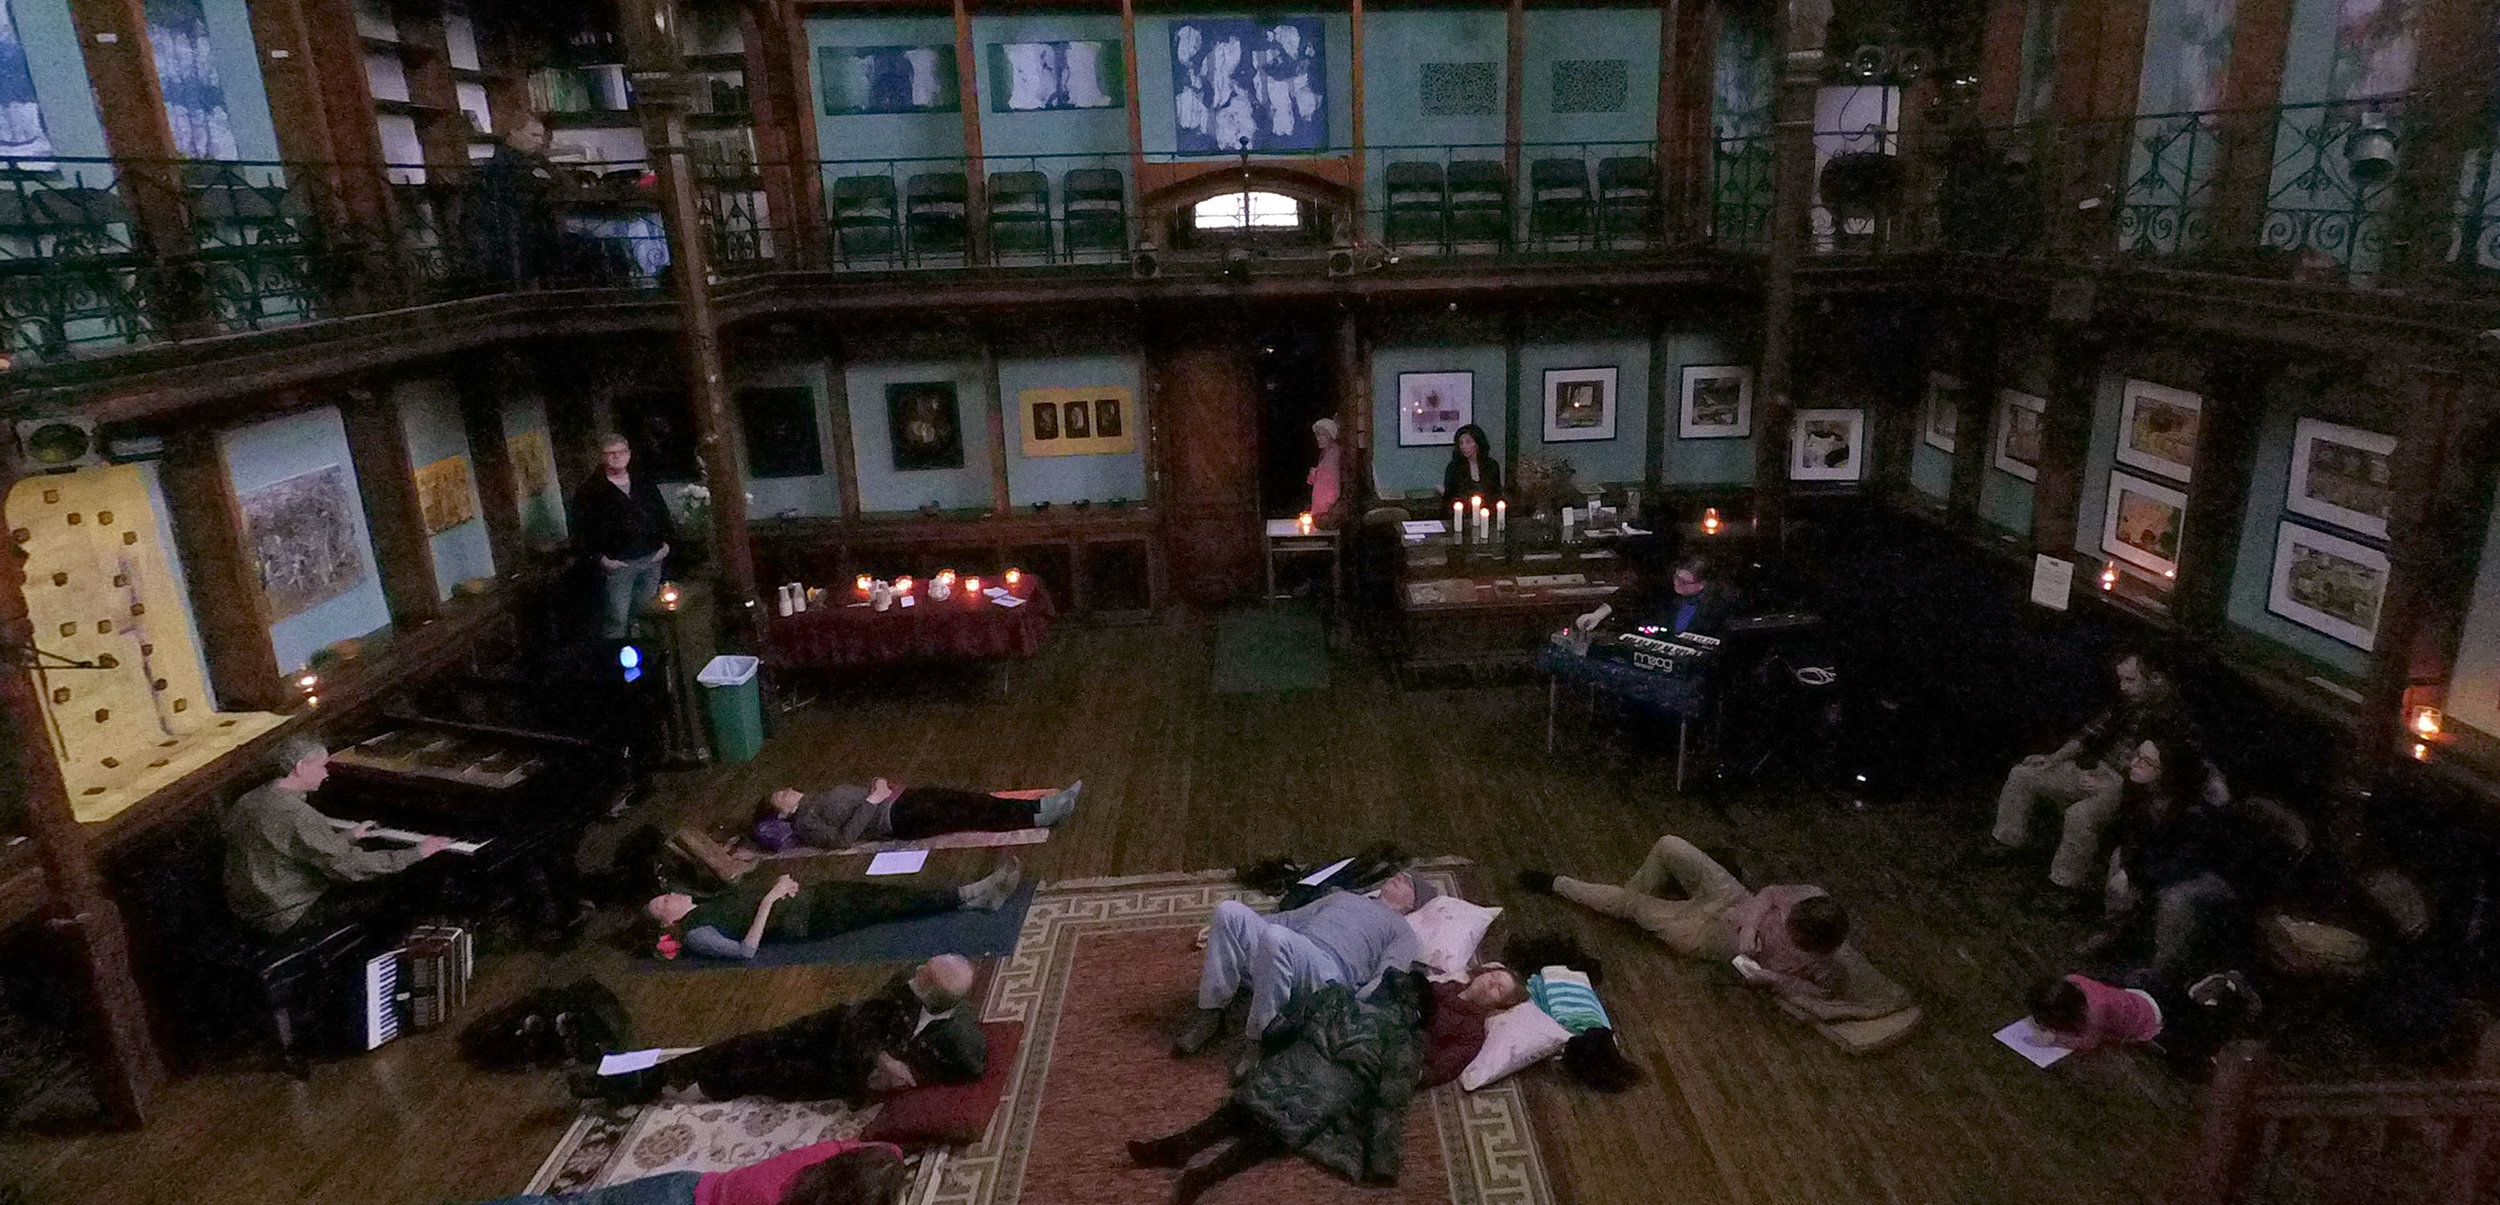 Sound/Peace performance at The Howland Cultural Center in Beacon, NY on November 19, 2017